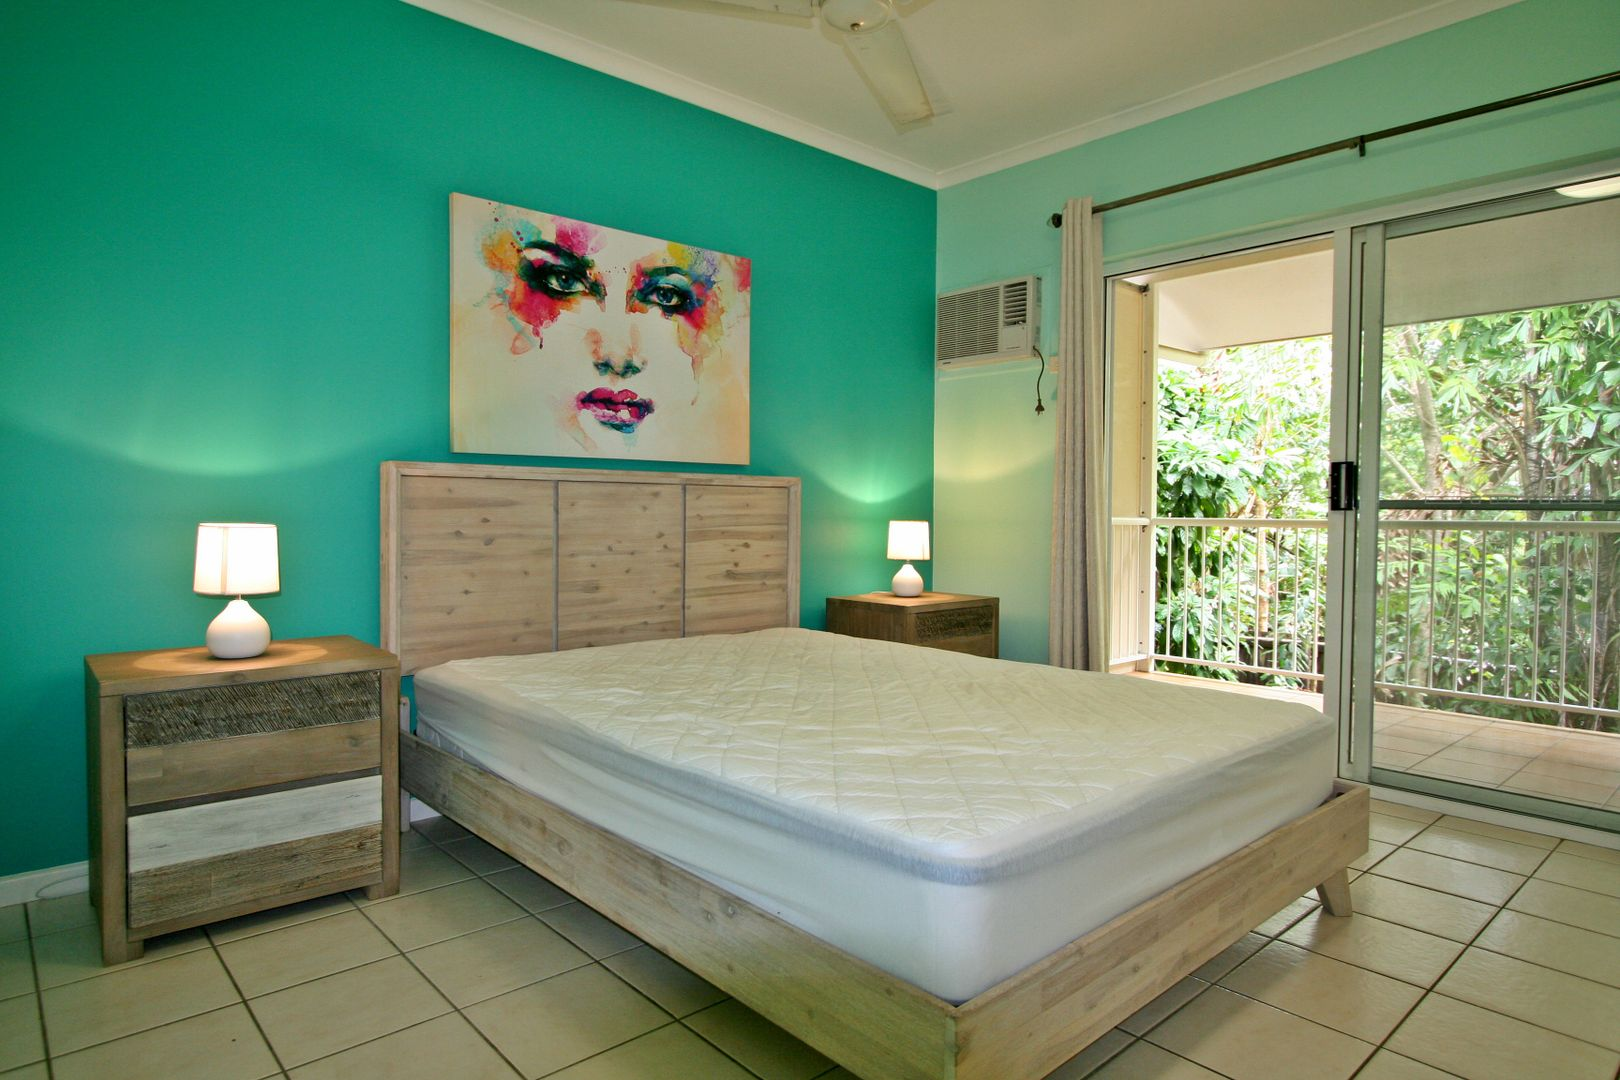 21/1 Beor St - Plantation Resort, Port Douglas QLD 4877 ...